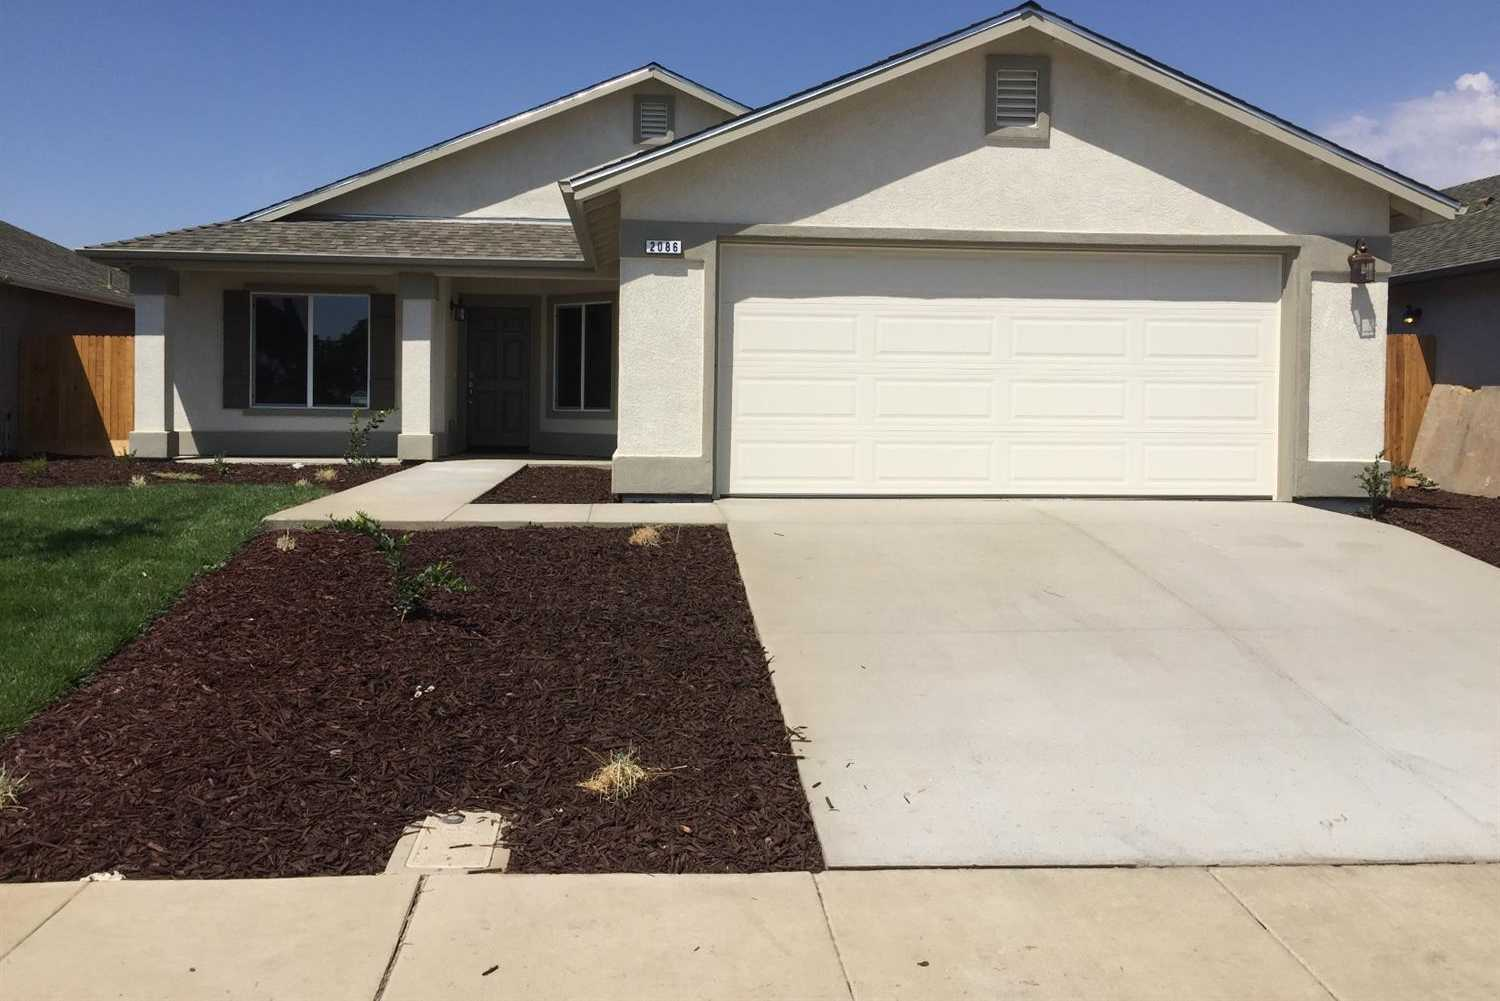 $259,900 - 4Br/2Ba -  for Sale in Merced